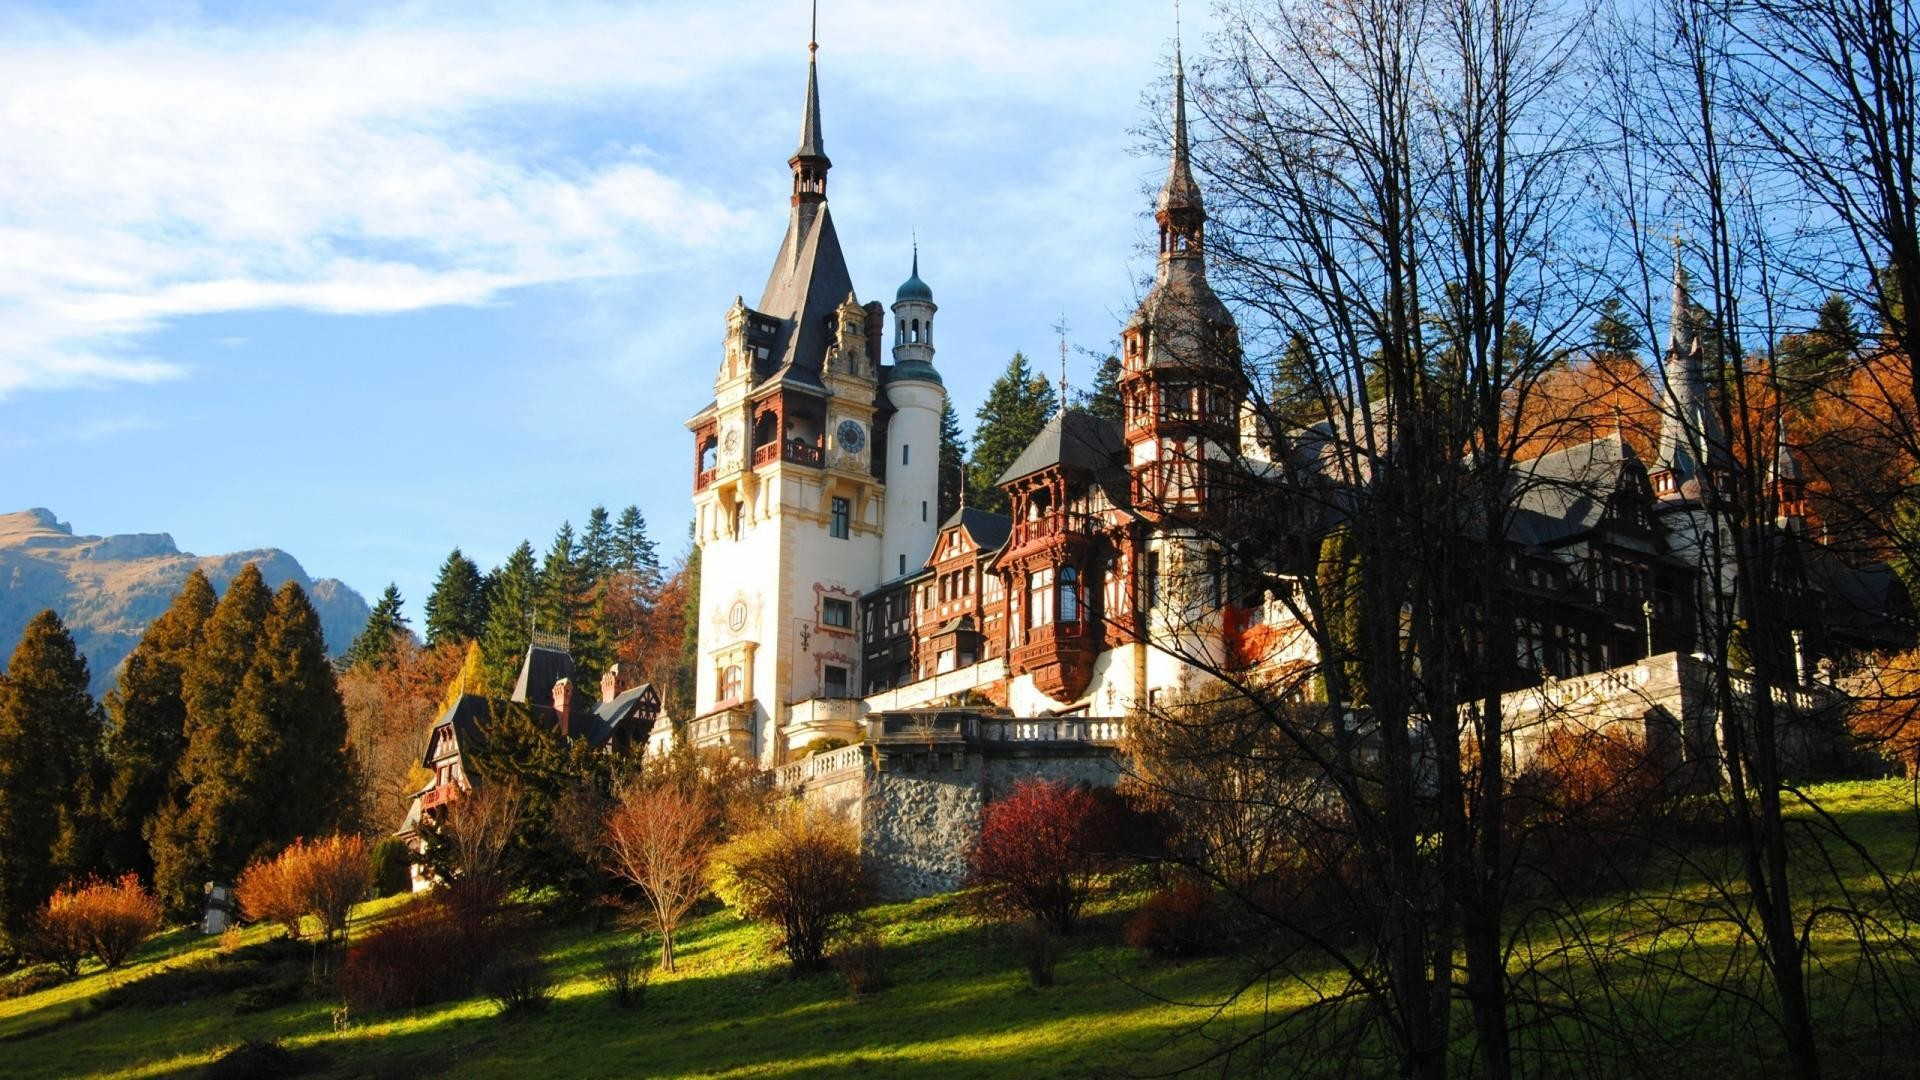 Res: 1920x1080, Wondrous Peles Castle In Romania wallpaper thumb